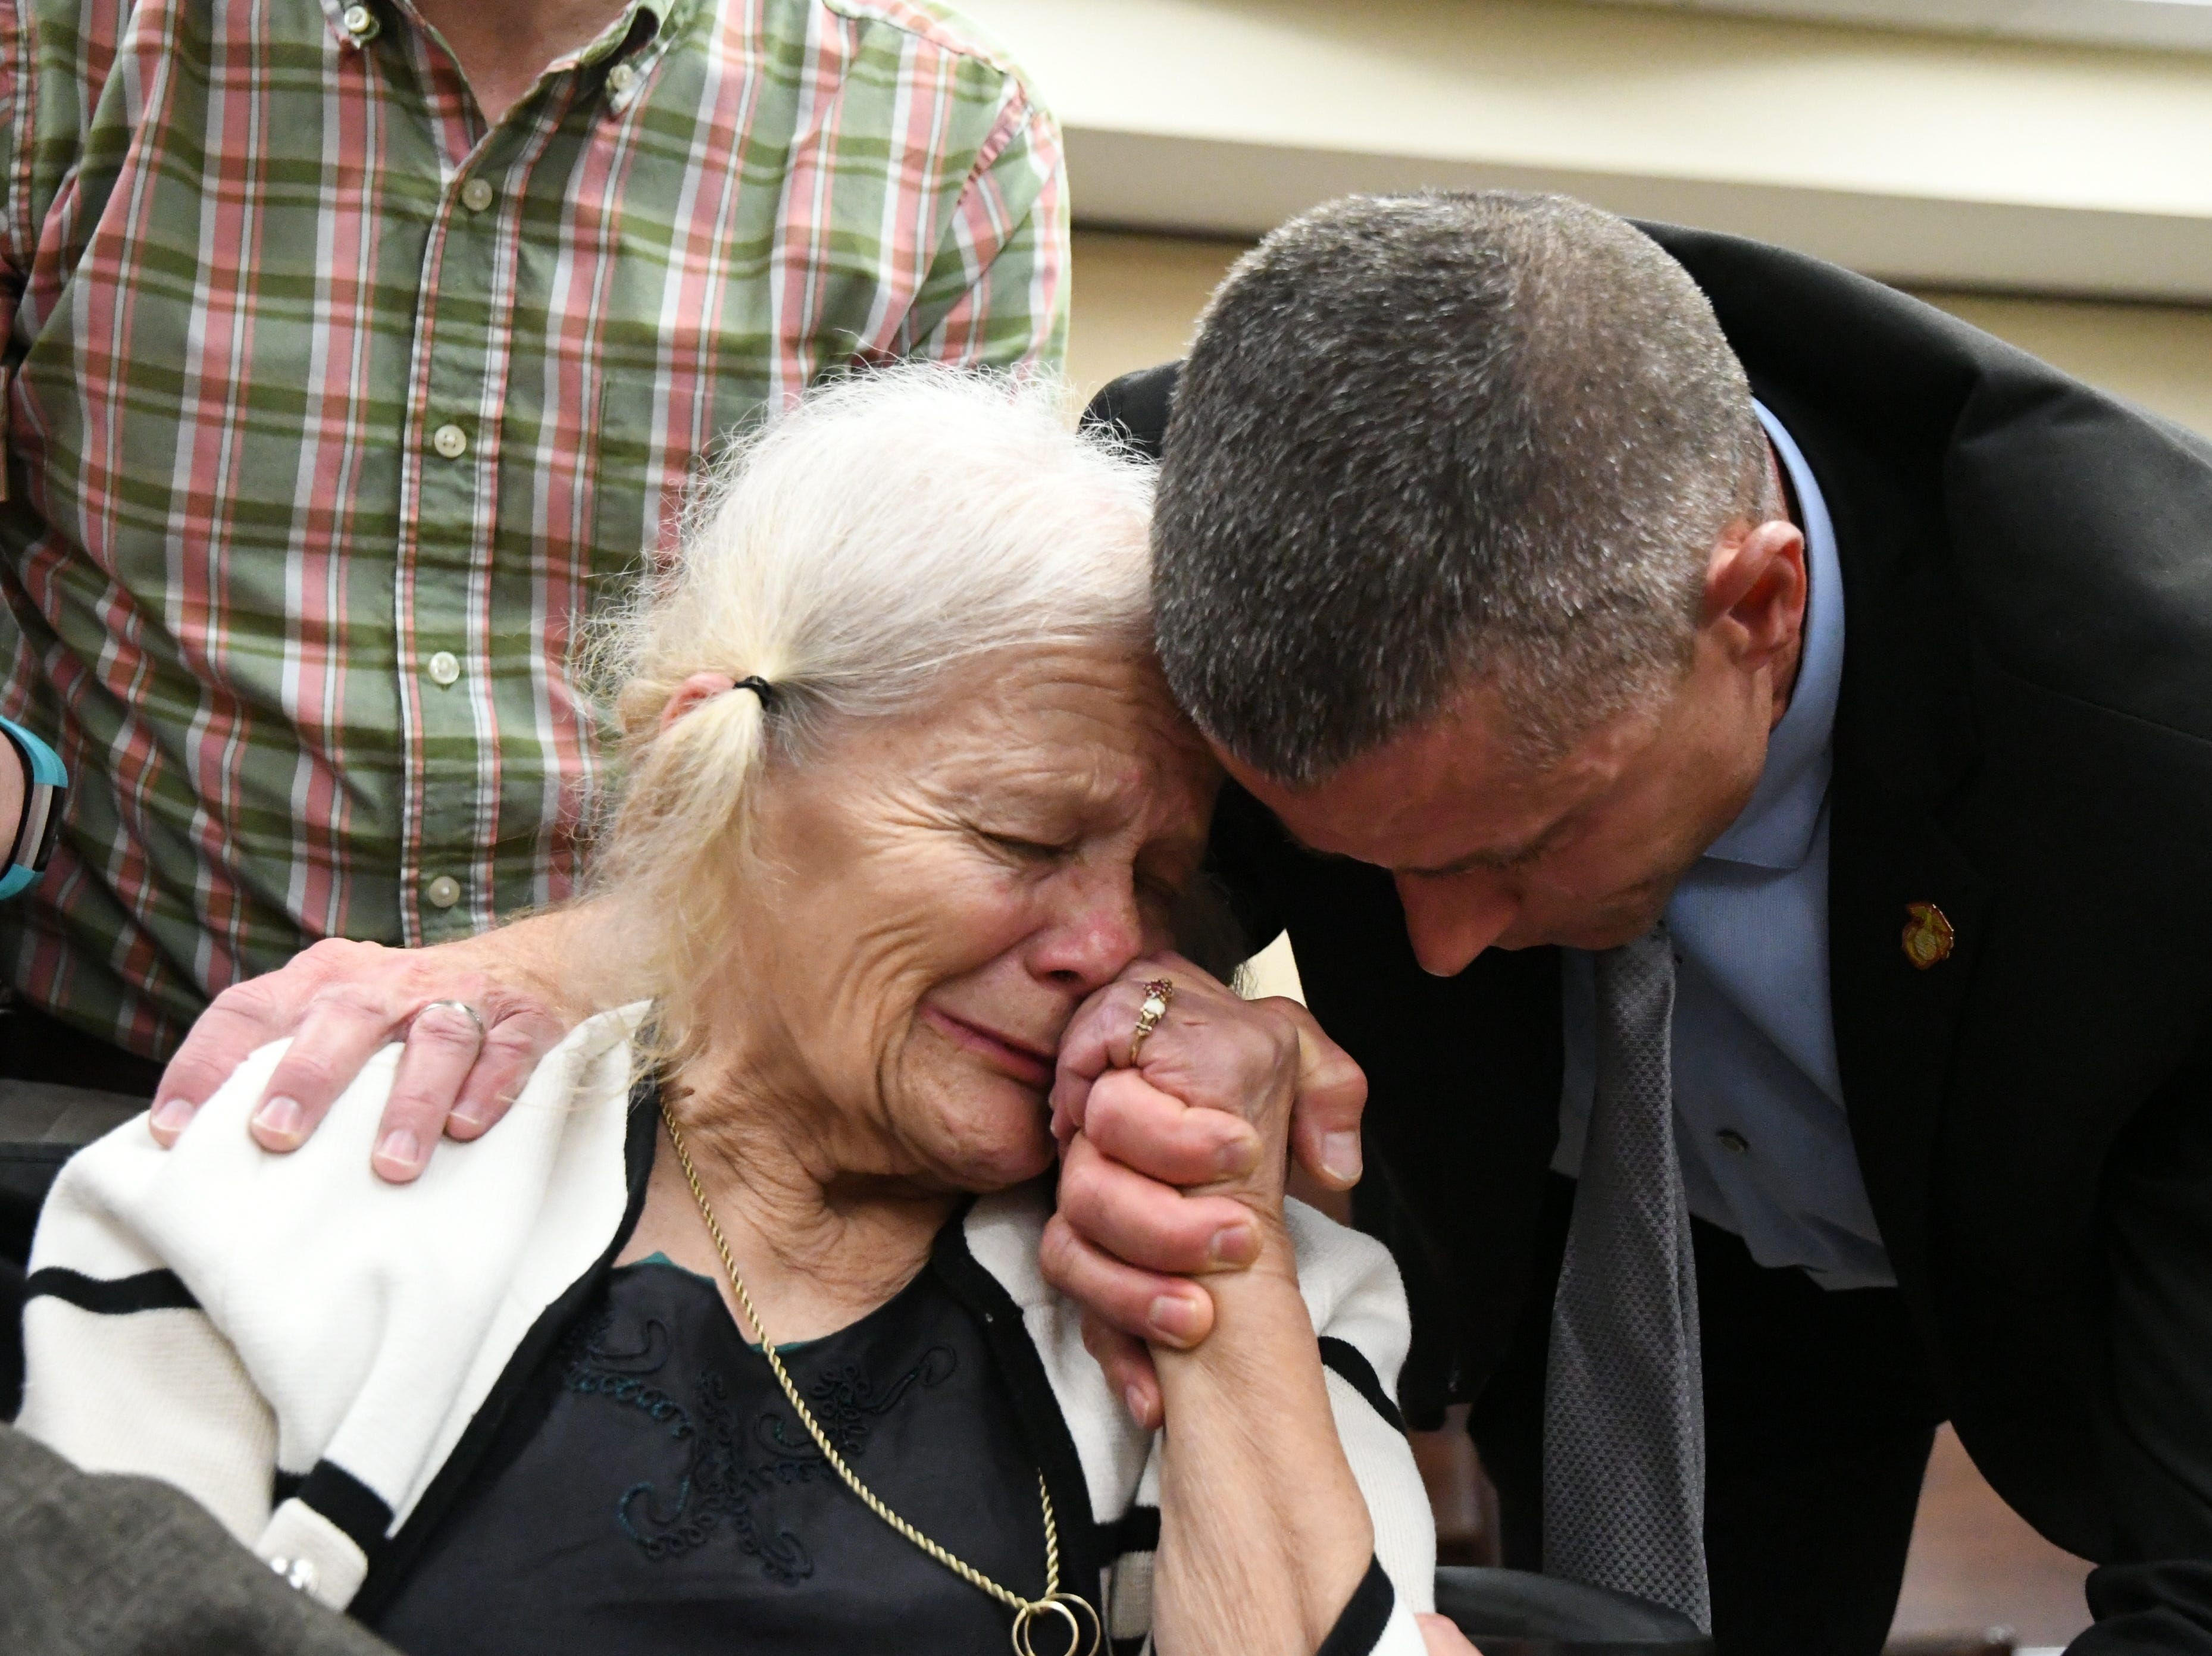 Cheryl Williams, left, mother of Mike Williams, the man who was shot and killed by his best friend 18 years ago, along side family friend Josey Visnovske, cry tears of joy for a the guilty verdicts in the trial against Denise Williams, Mike's former wife, Friday, Dec. 14, 2018.